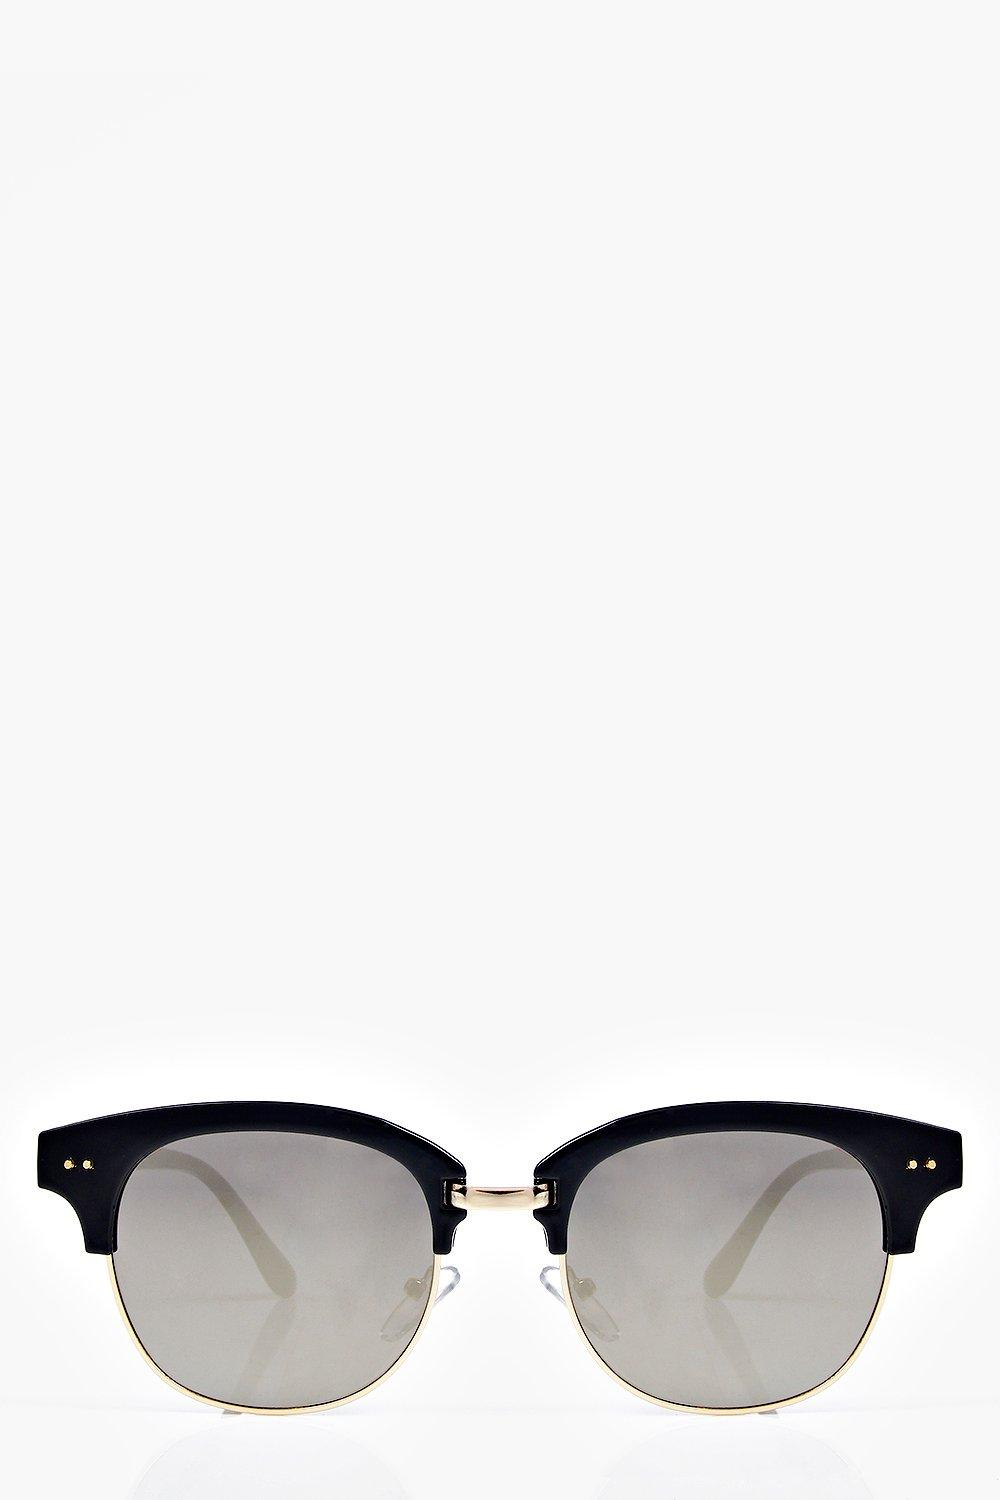 Eva Mirrored Half Frame Wayfarer Fashion Glasses